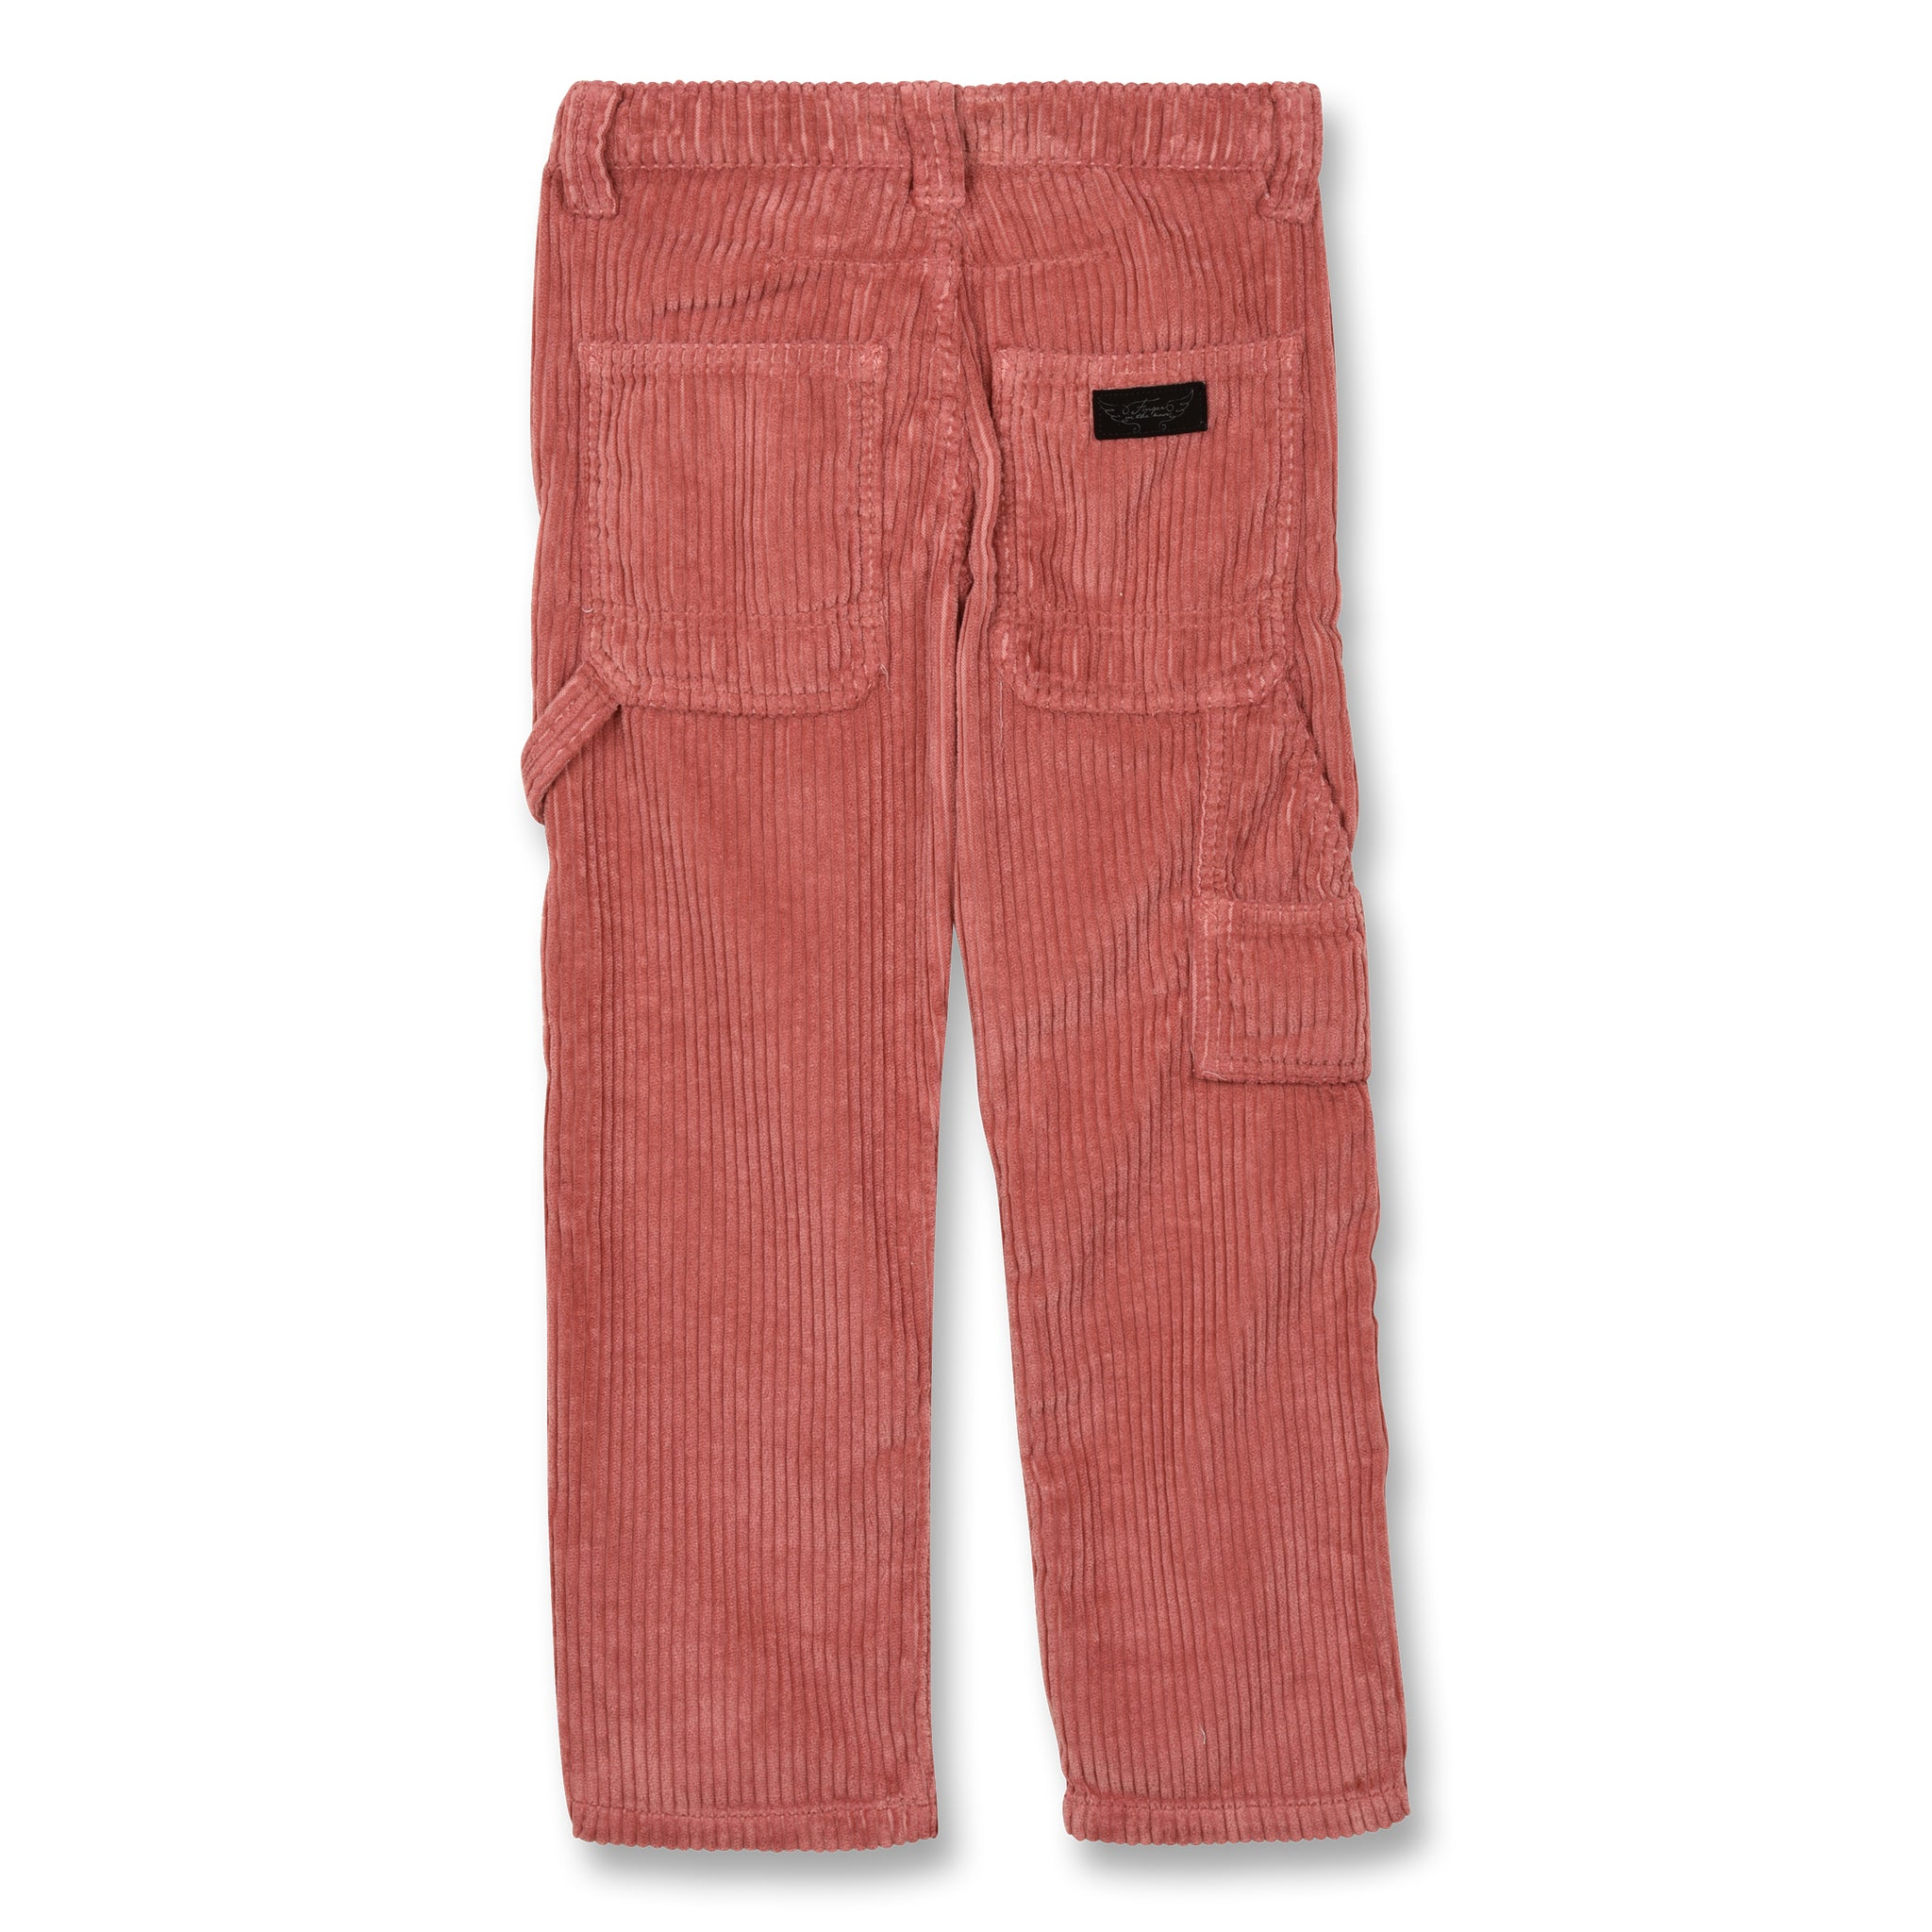 CARPENTER Old Pink Jumbo Cord - MultiPocket Baggy Fit Pants 1